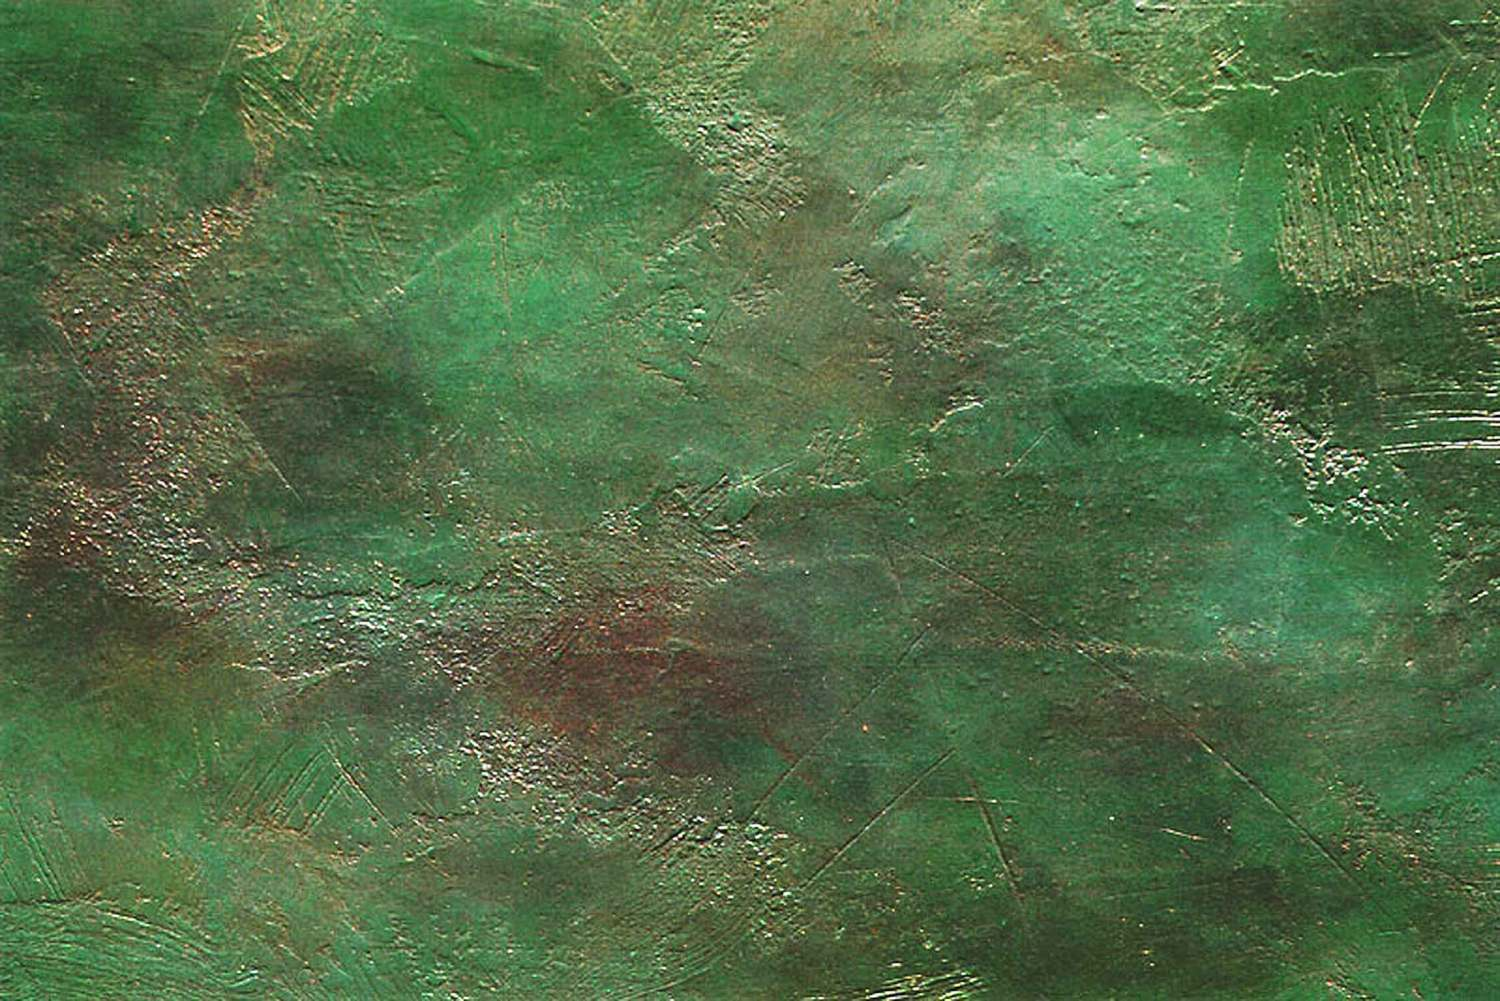 sand ocean - 145 x 196 cm - acrylic, plaster and sand on canvas - 1998